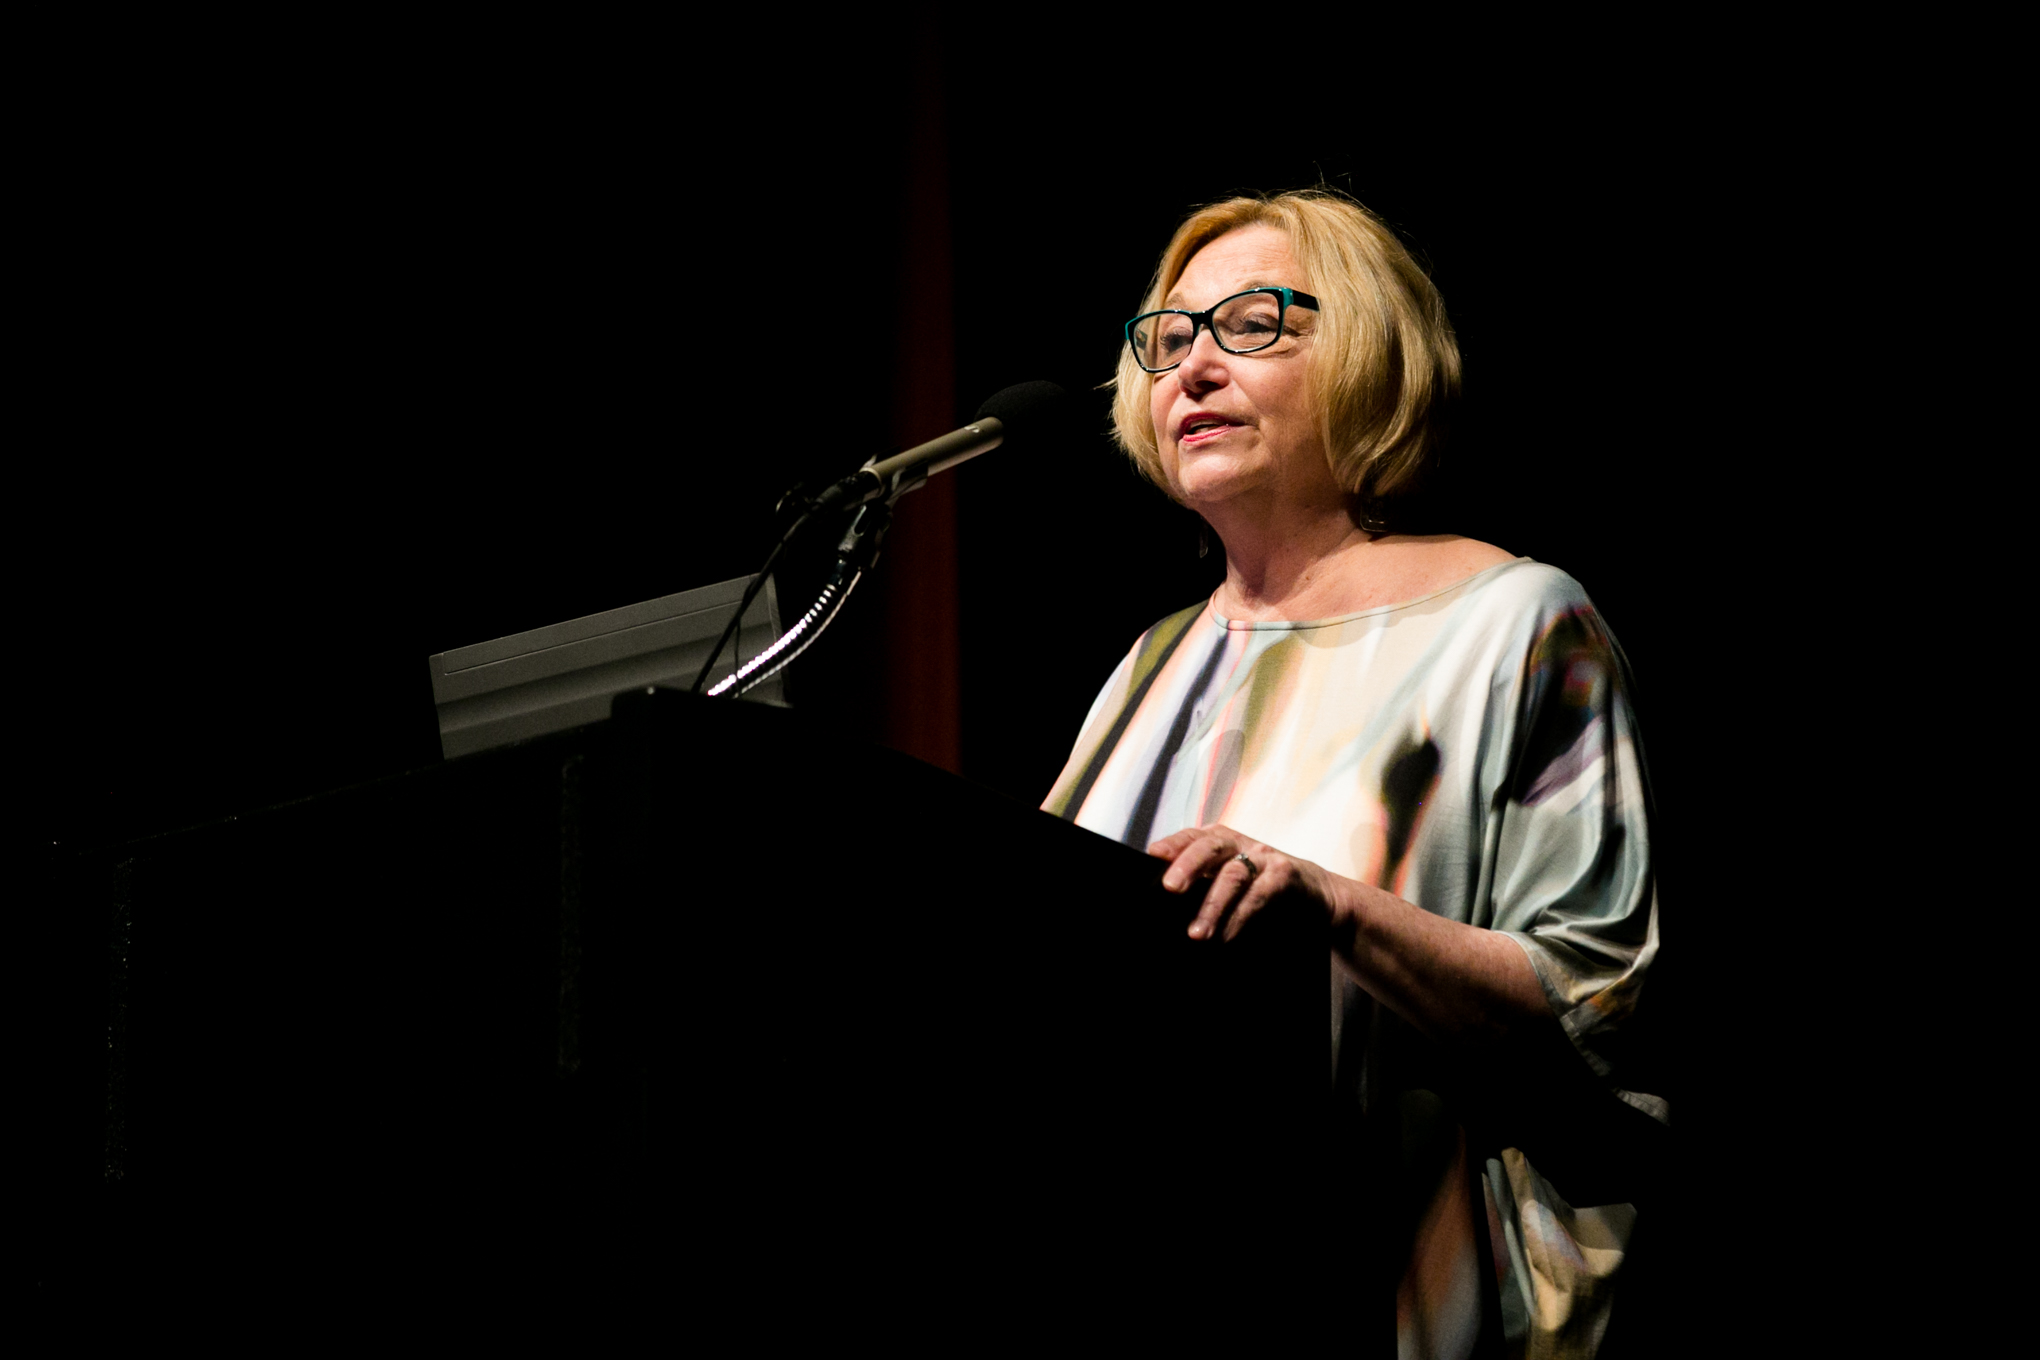 Poet Barbara Ras speaks about the challenges of crafting a poem. Photo by Kathryn Boyd-Batstone.